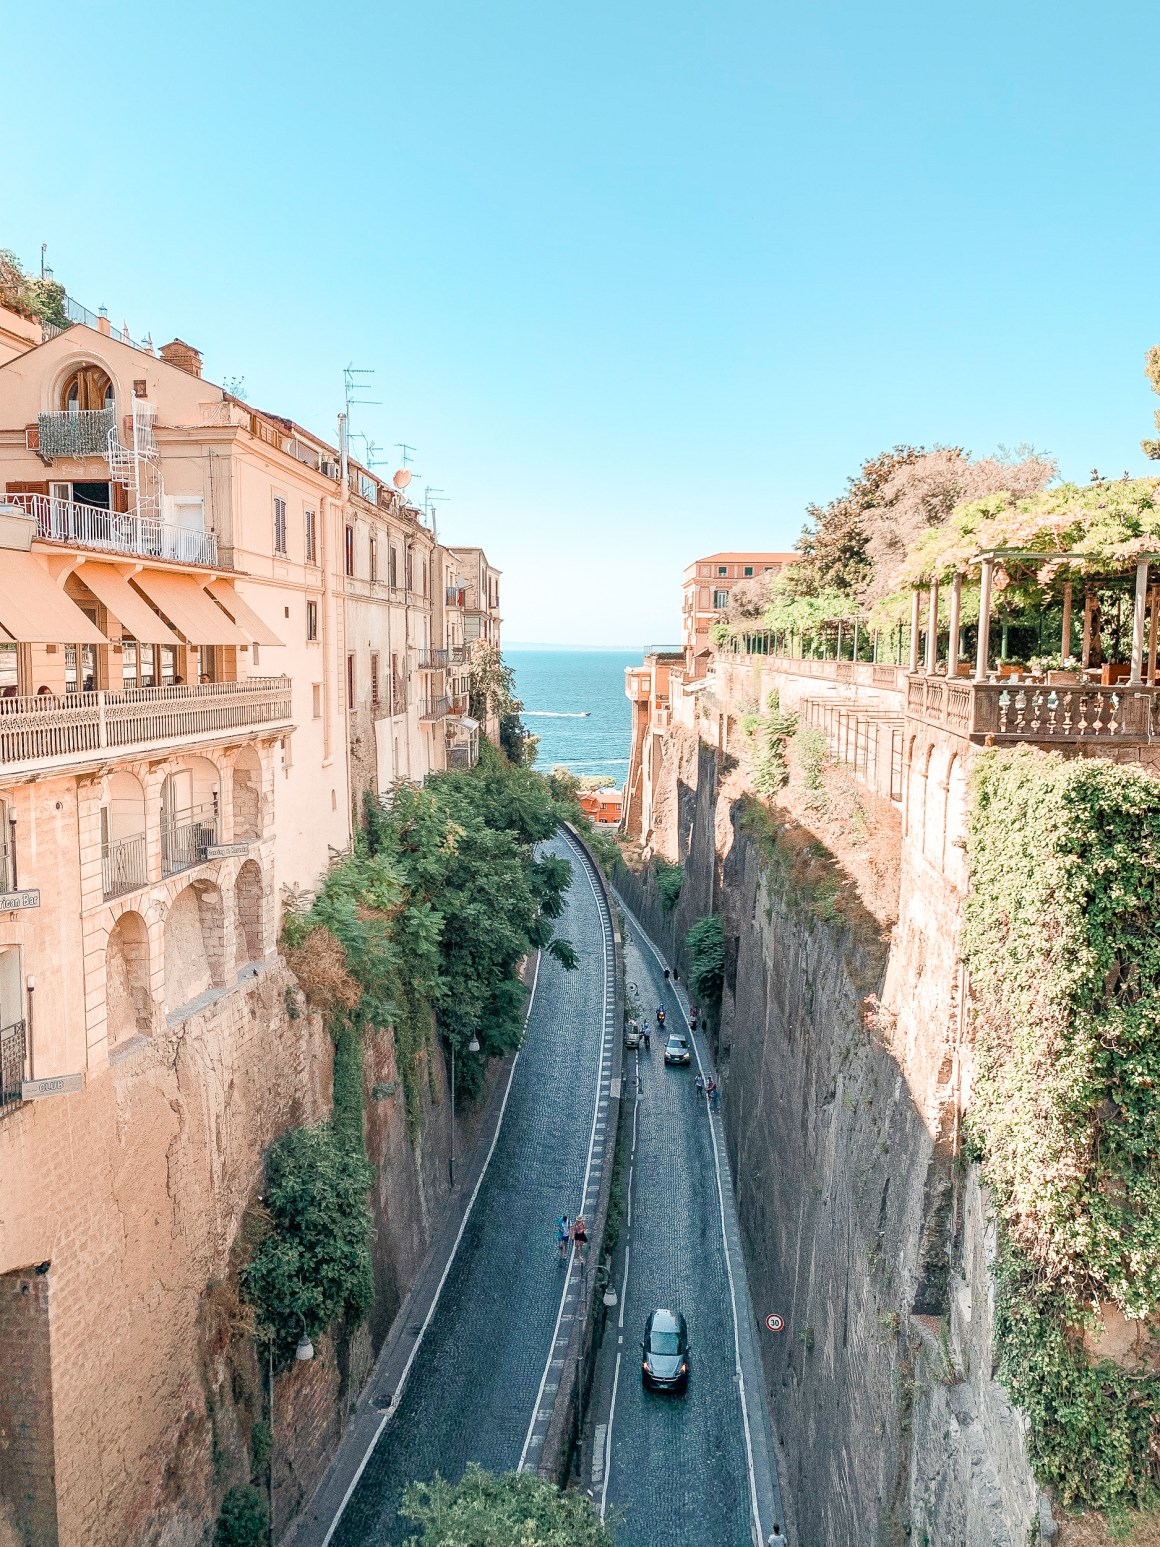 Sweet Sorrento (Napels & Amalfi travel guide 2/7)